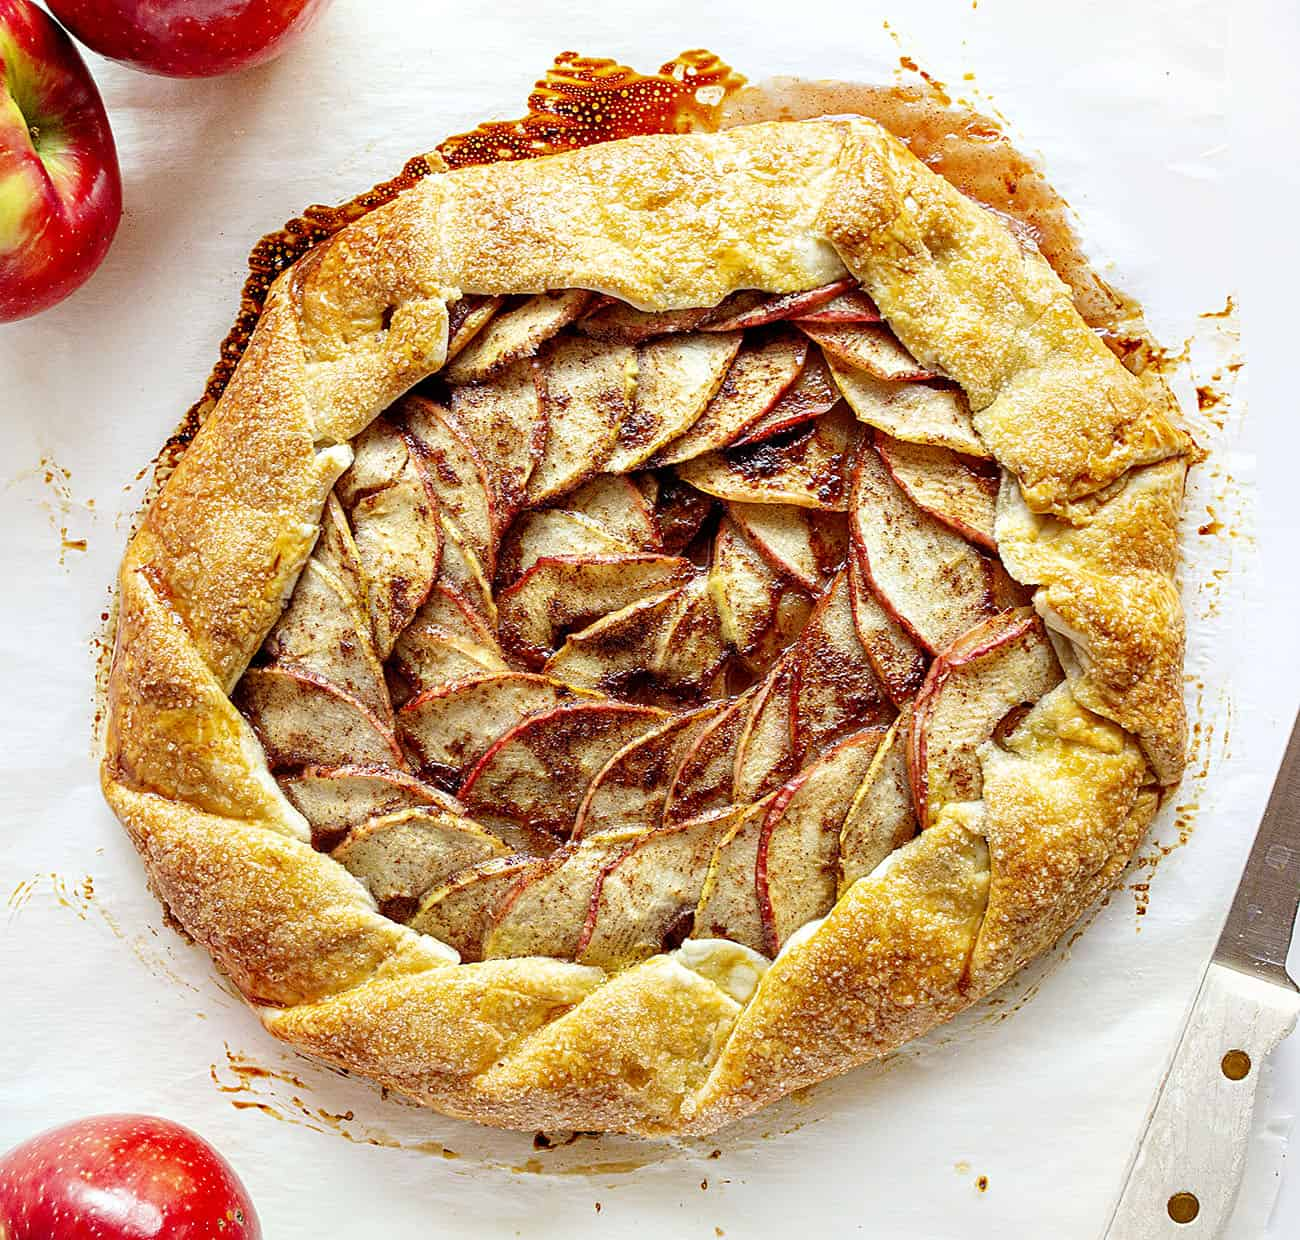 Baked Homemade Homemade Apple Galette